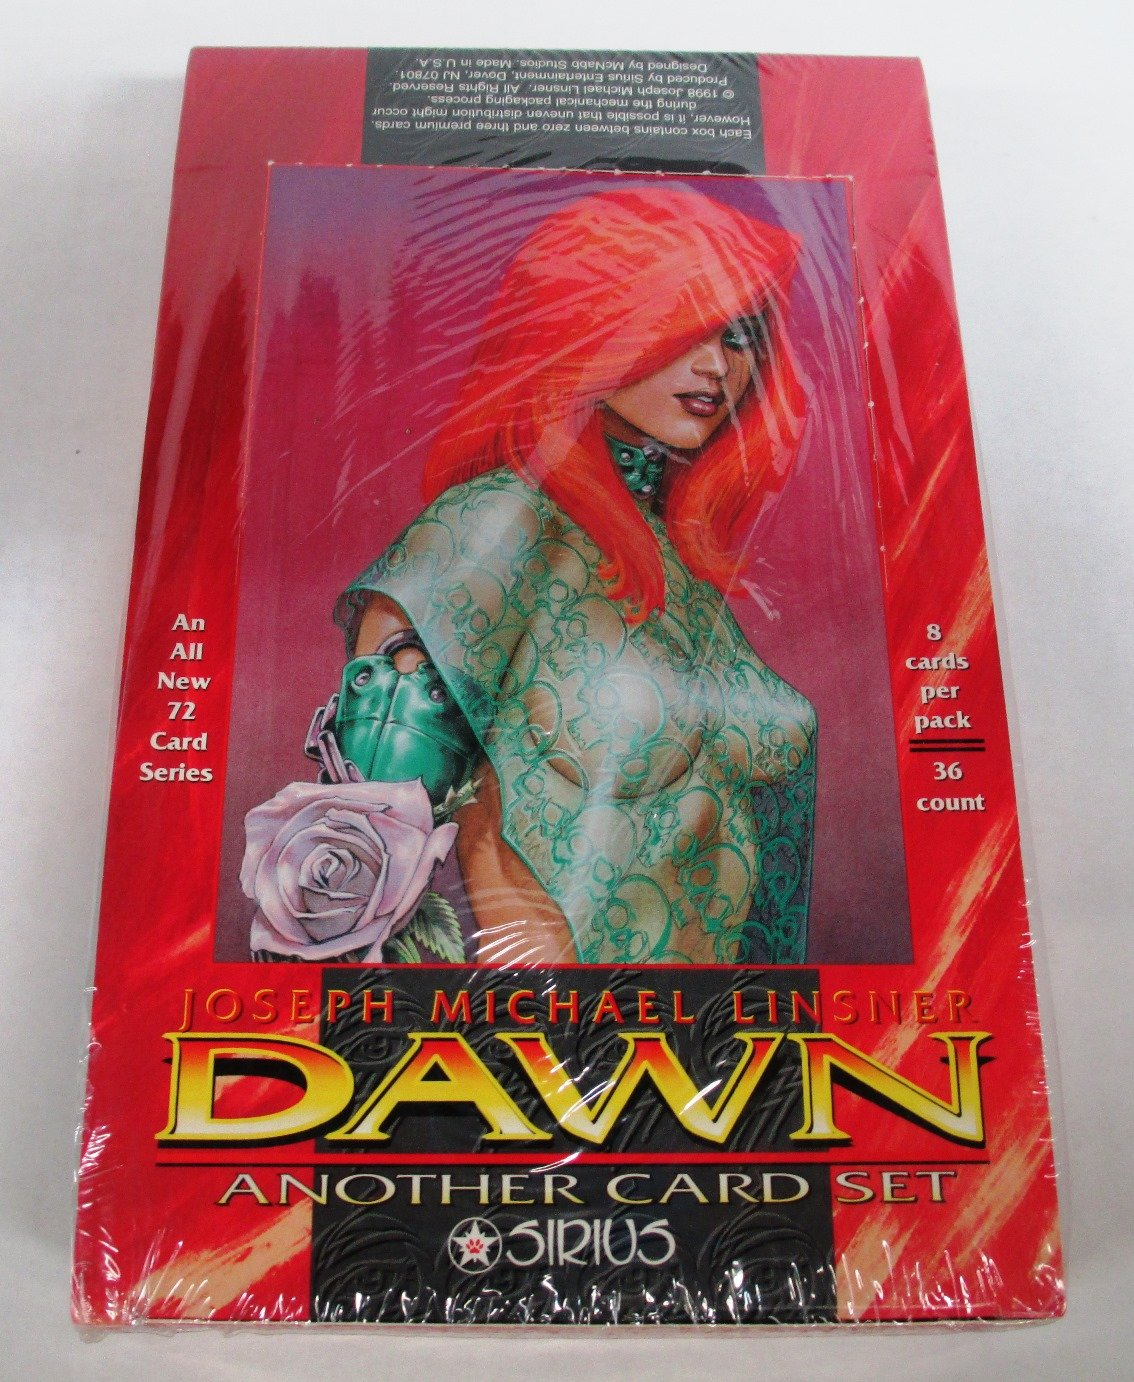 Joseph Michael Linsner's Dawn Another Trading Card Box Set - 36 Packs